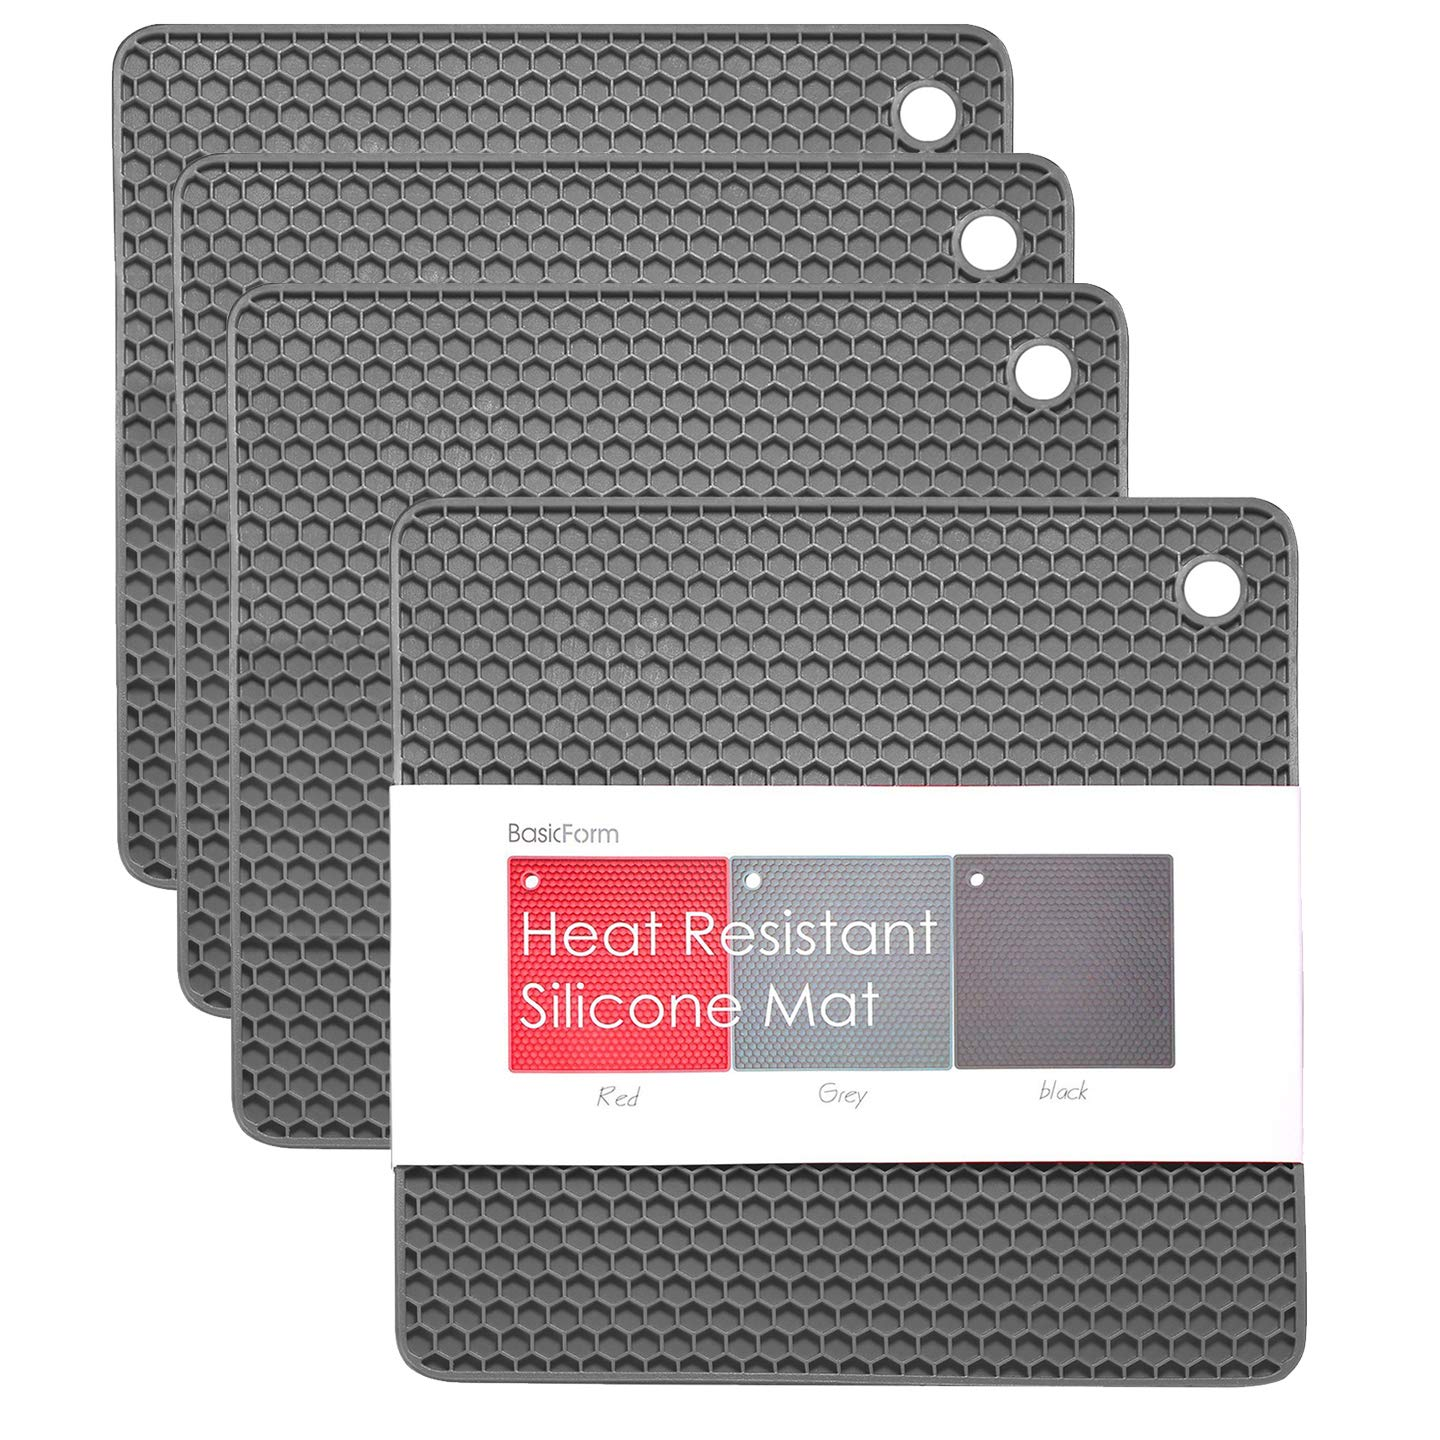 BasicForm Silicone Trivet Square Honeycomb Pattern 7.5x7.5x0.31 Inches (Set of 4) (Gray)